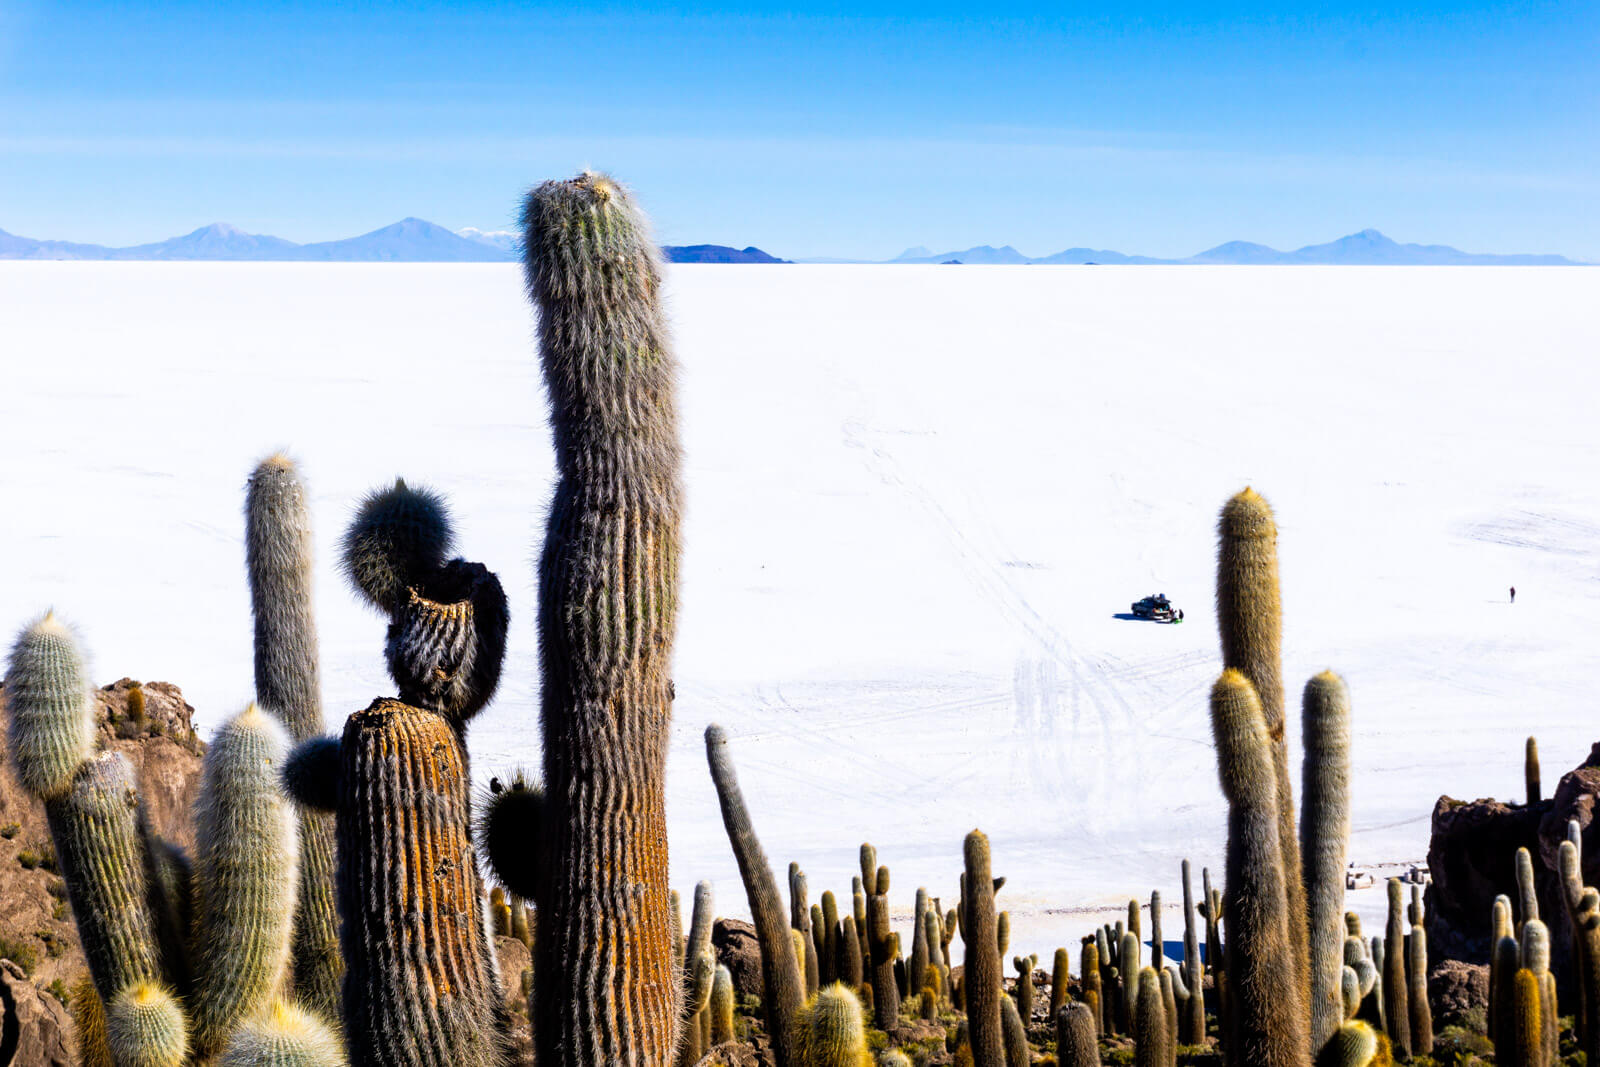 Cactus, cactus and more cactus at the Salar de Uyuni